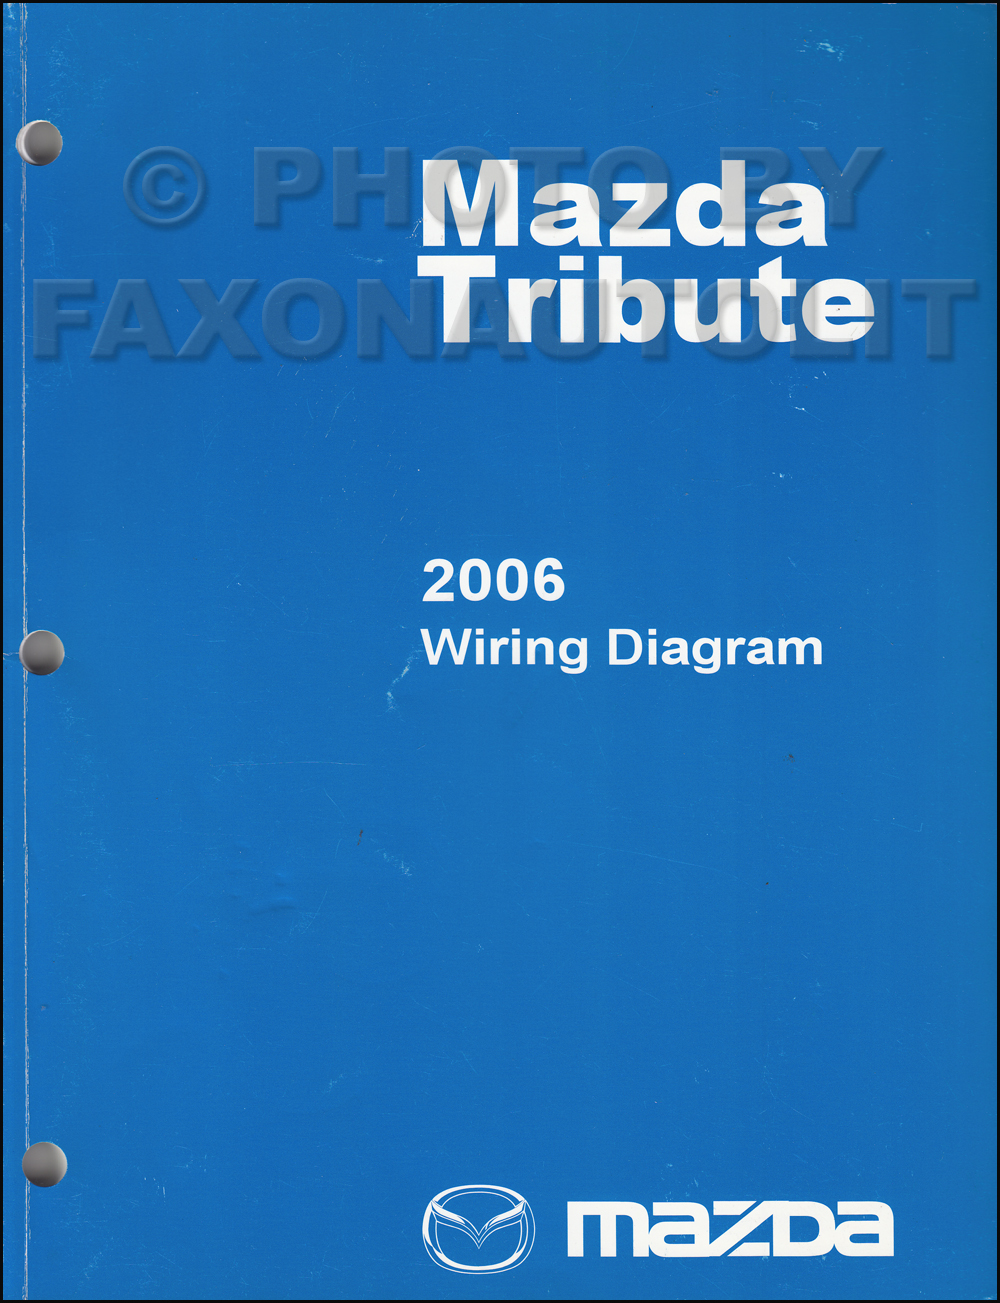 2006 Mazda Tribute Wiring Diagram Manual Original